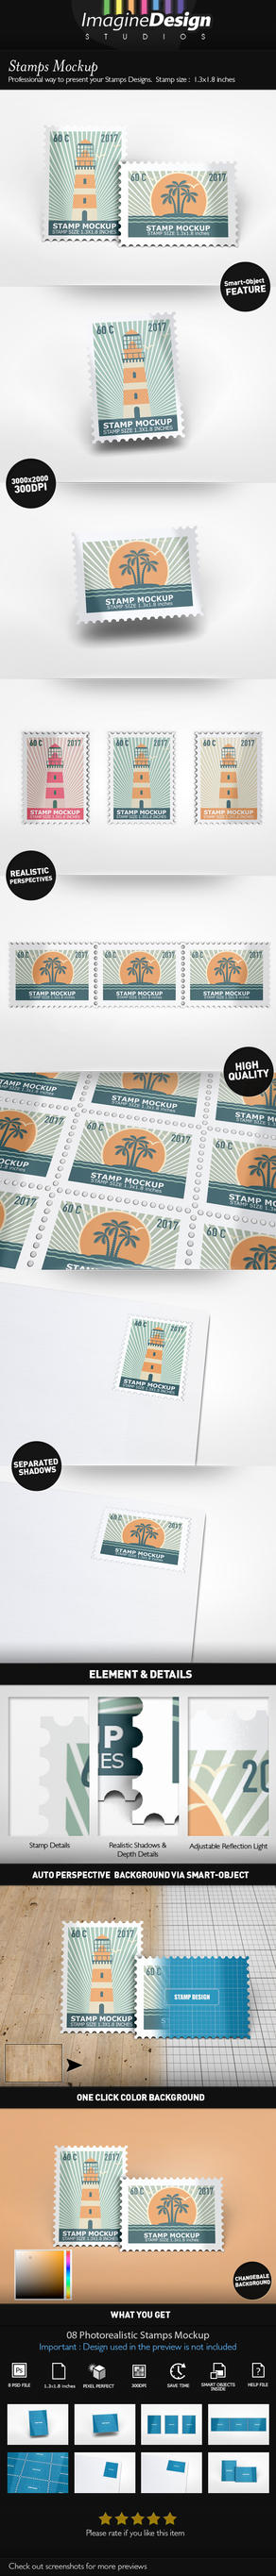 Stamps Mockup by idesignstudio